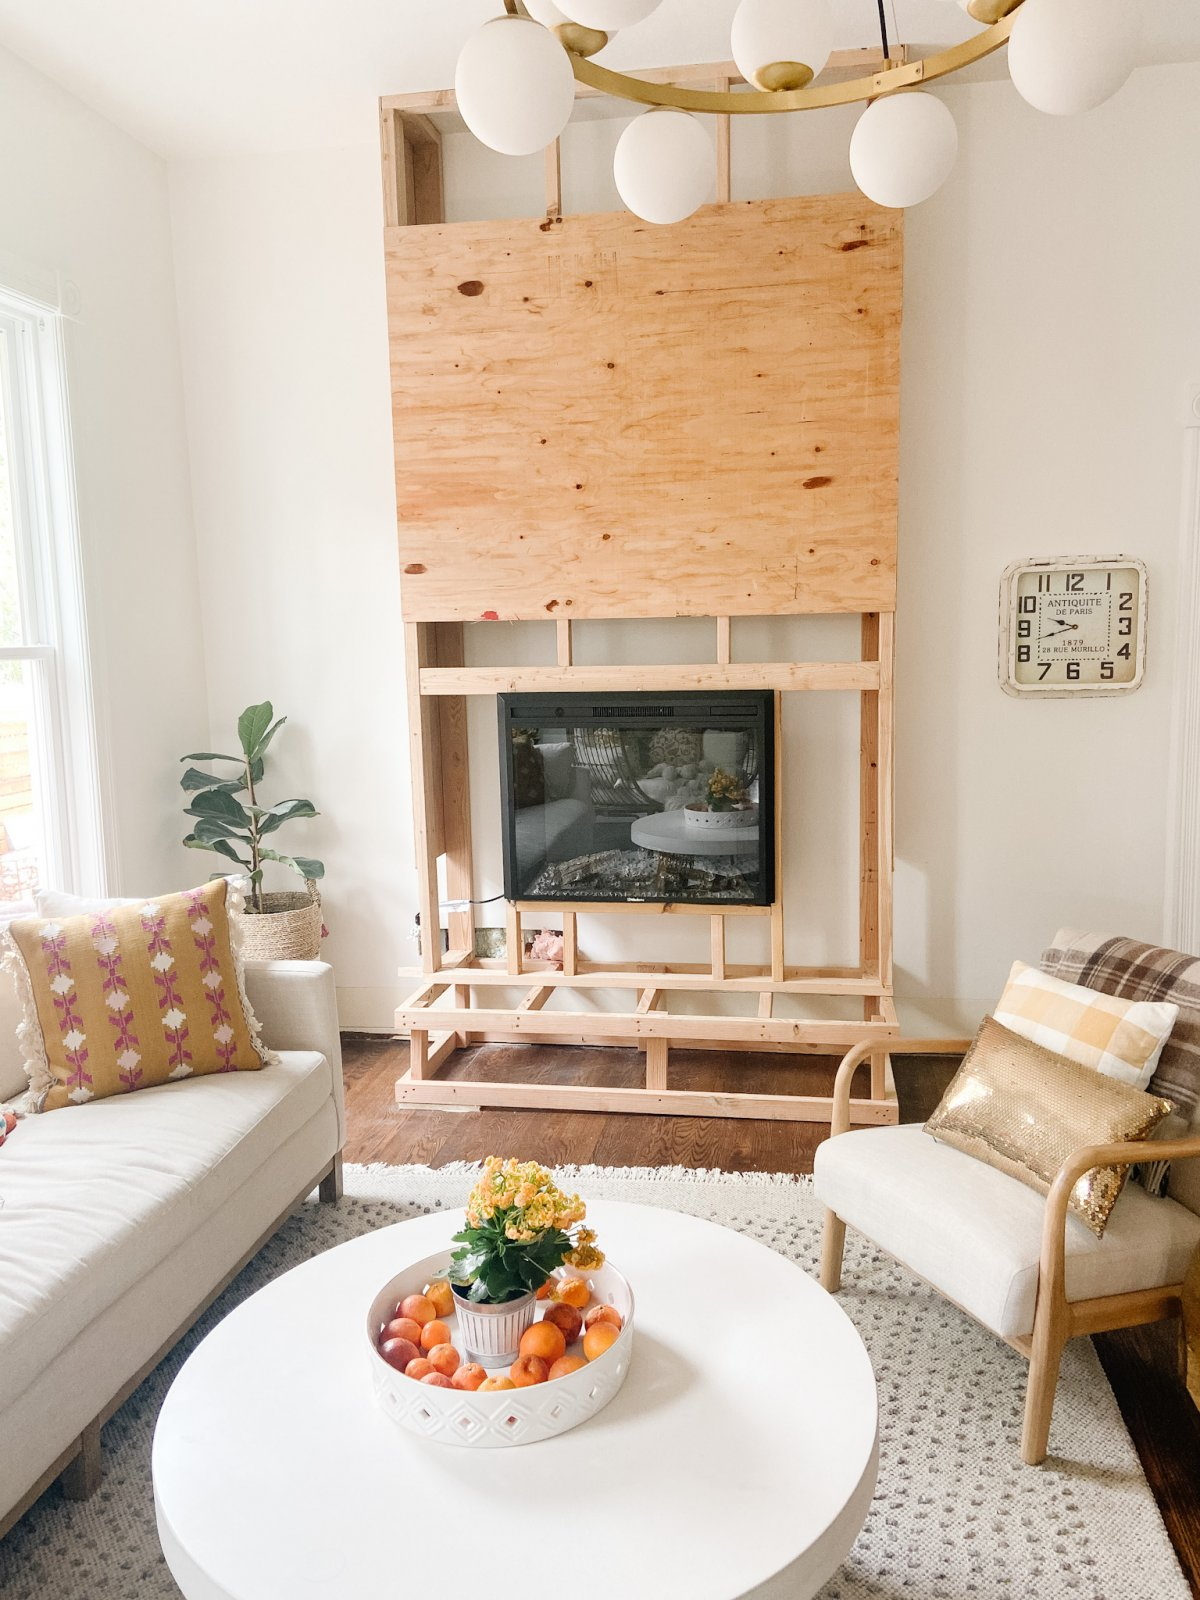 How to Add a New Fireplace to Your Home. Fireplaces provide a cozy focal point and heat to your home. How to choose an Electric Fireplace for Your Home.